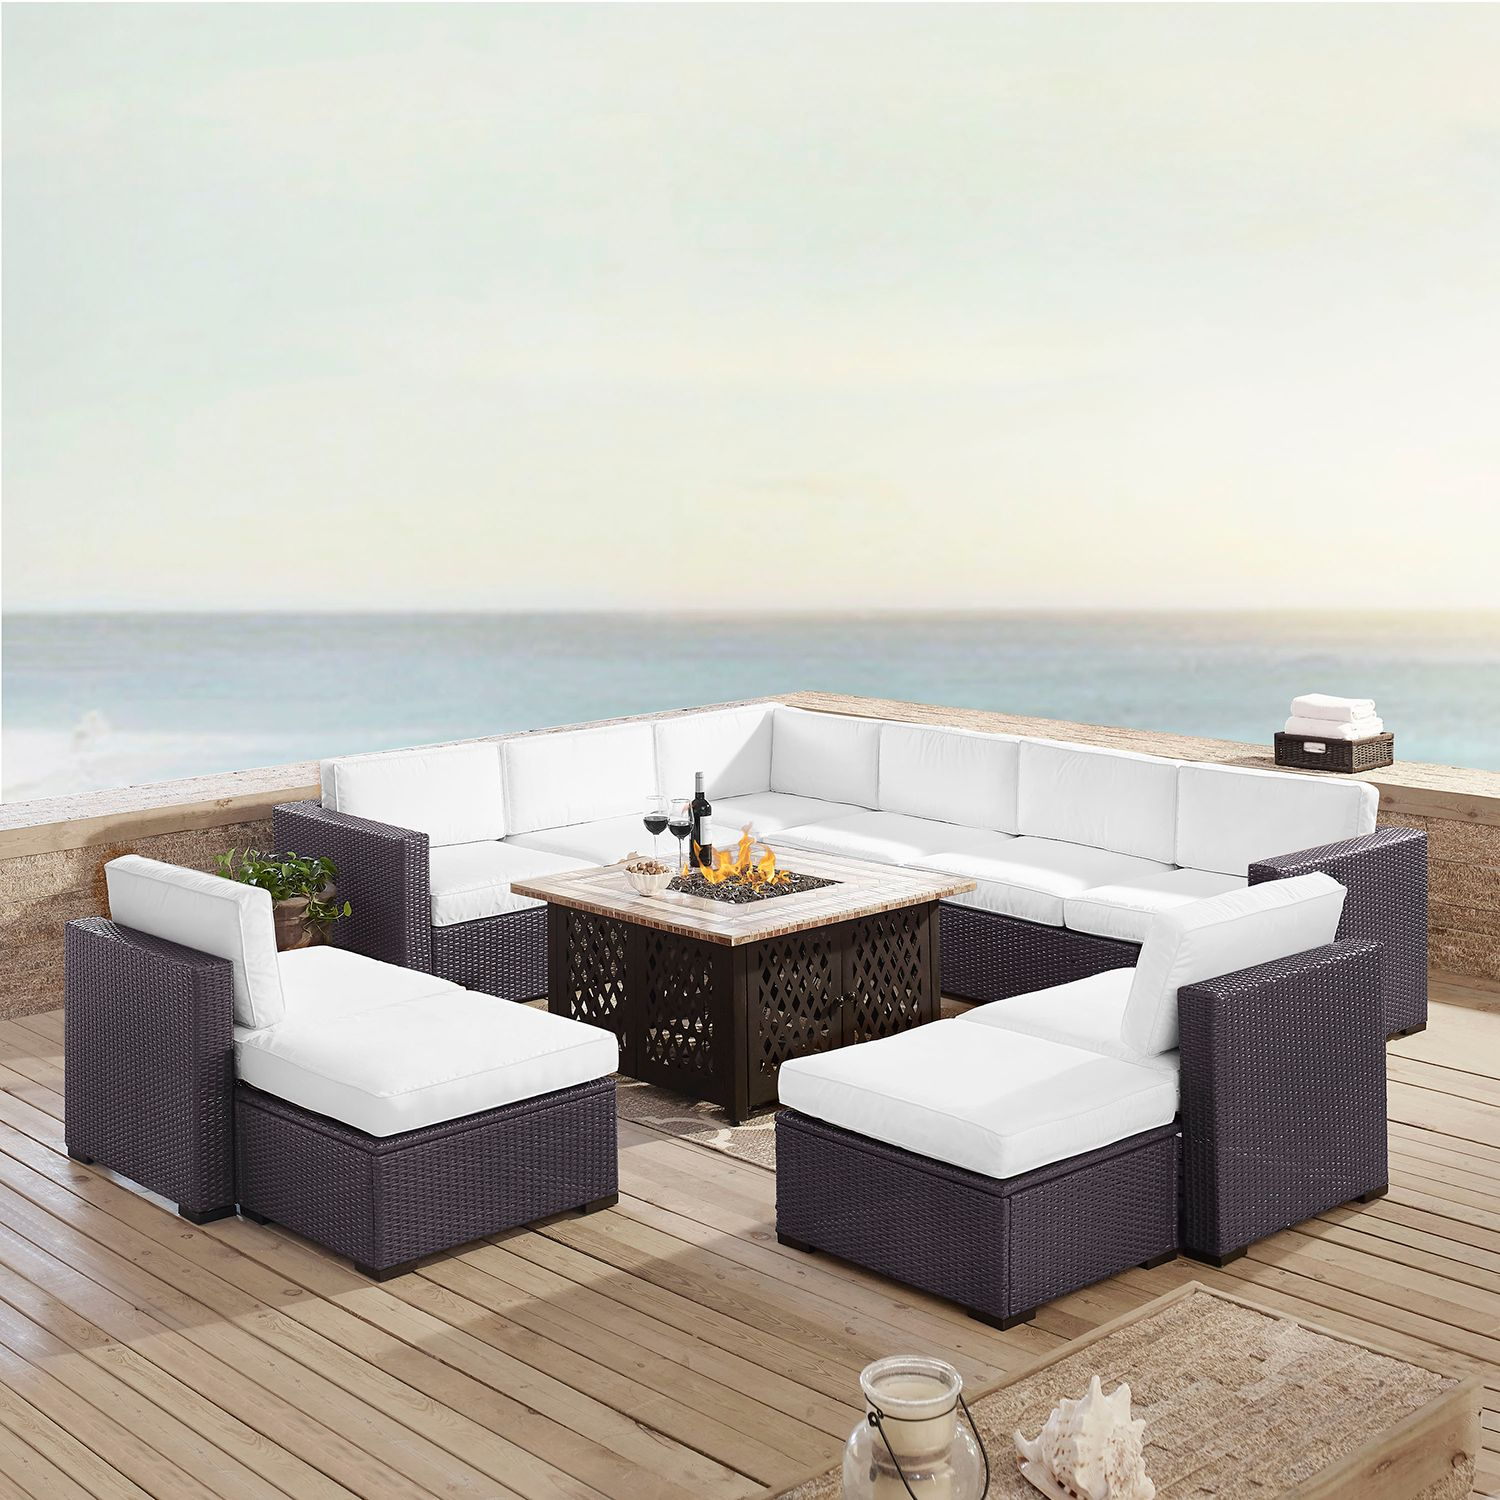 Crosley Furniture Biscayne Patio Wicker Loveseat, Chair, Ottoman U0026 Fire Pit  Coffee Table 8